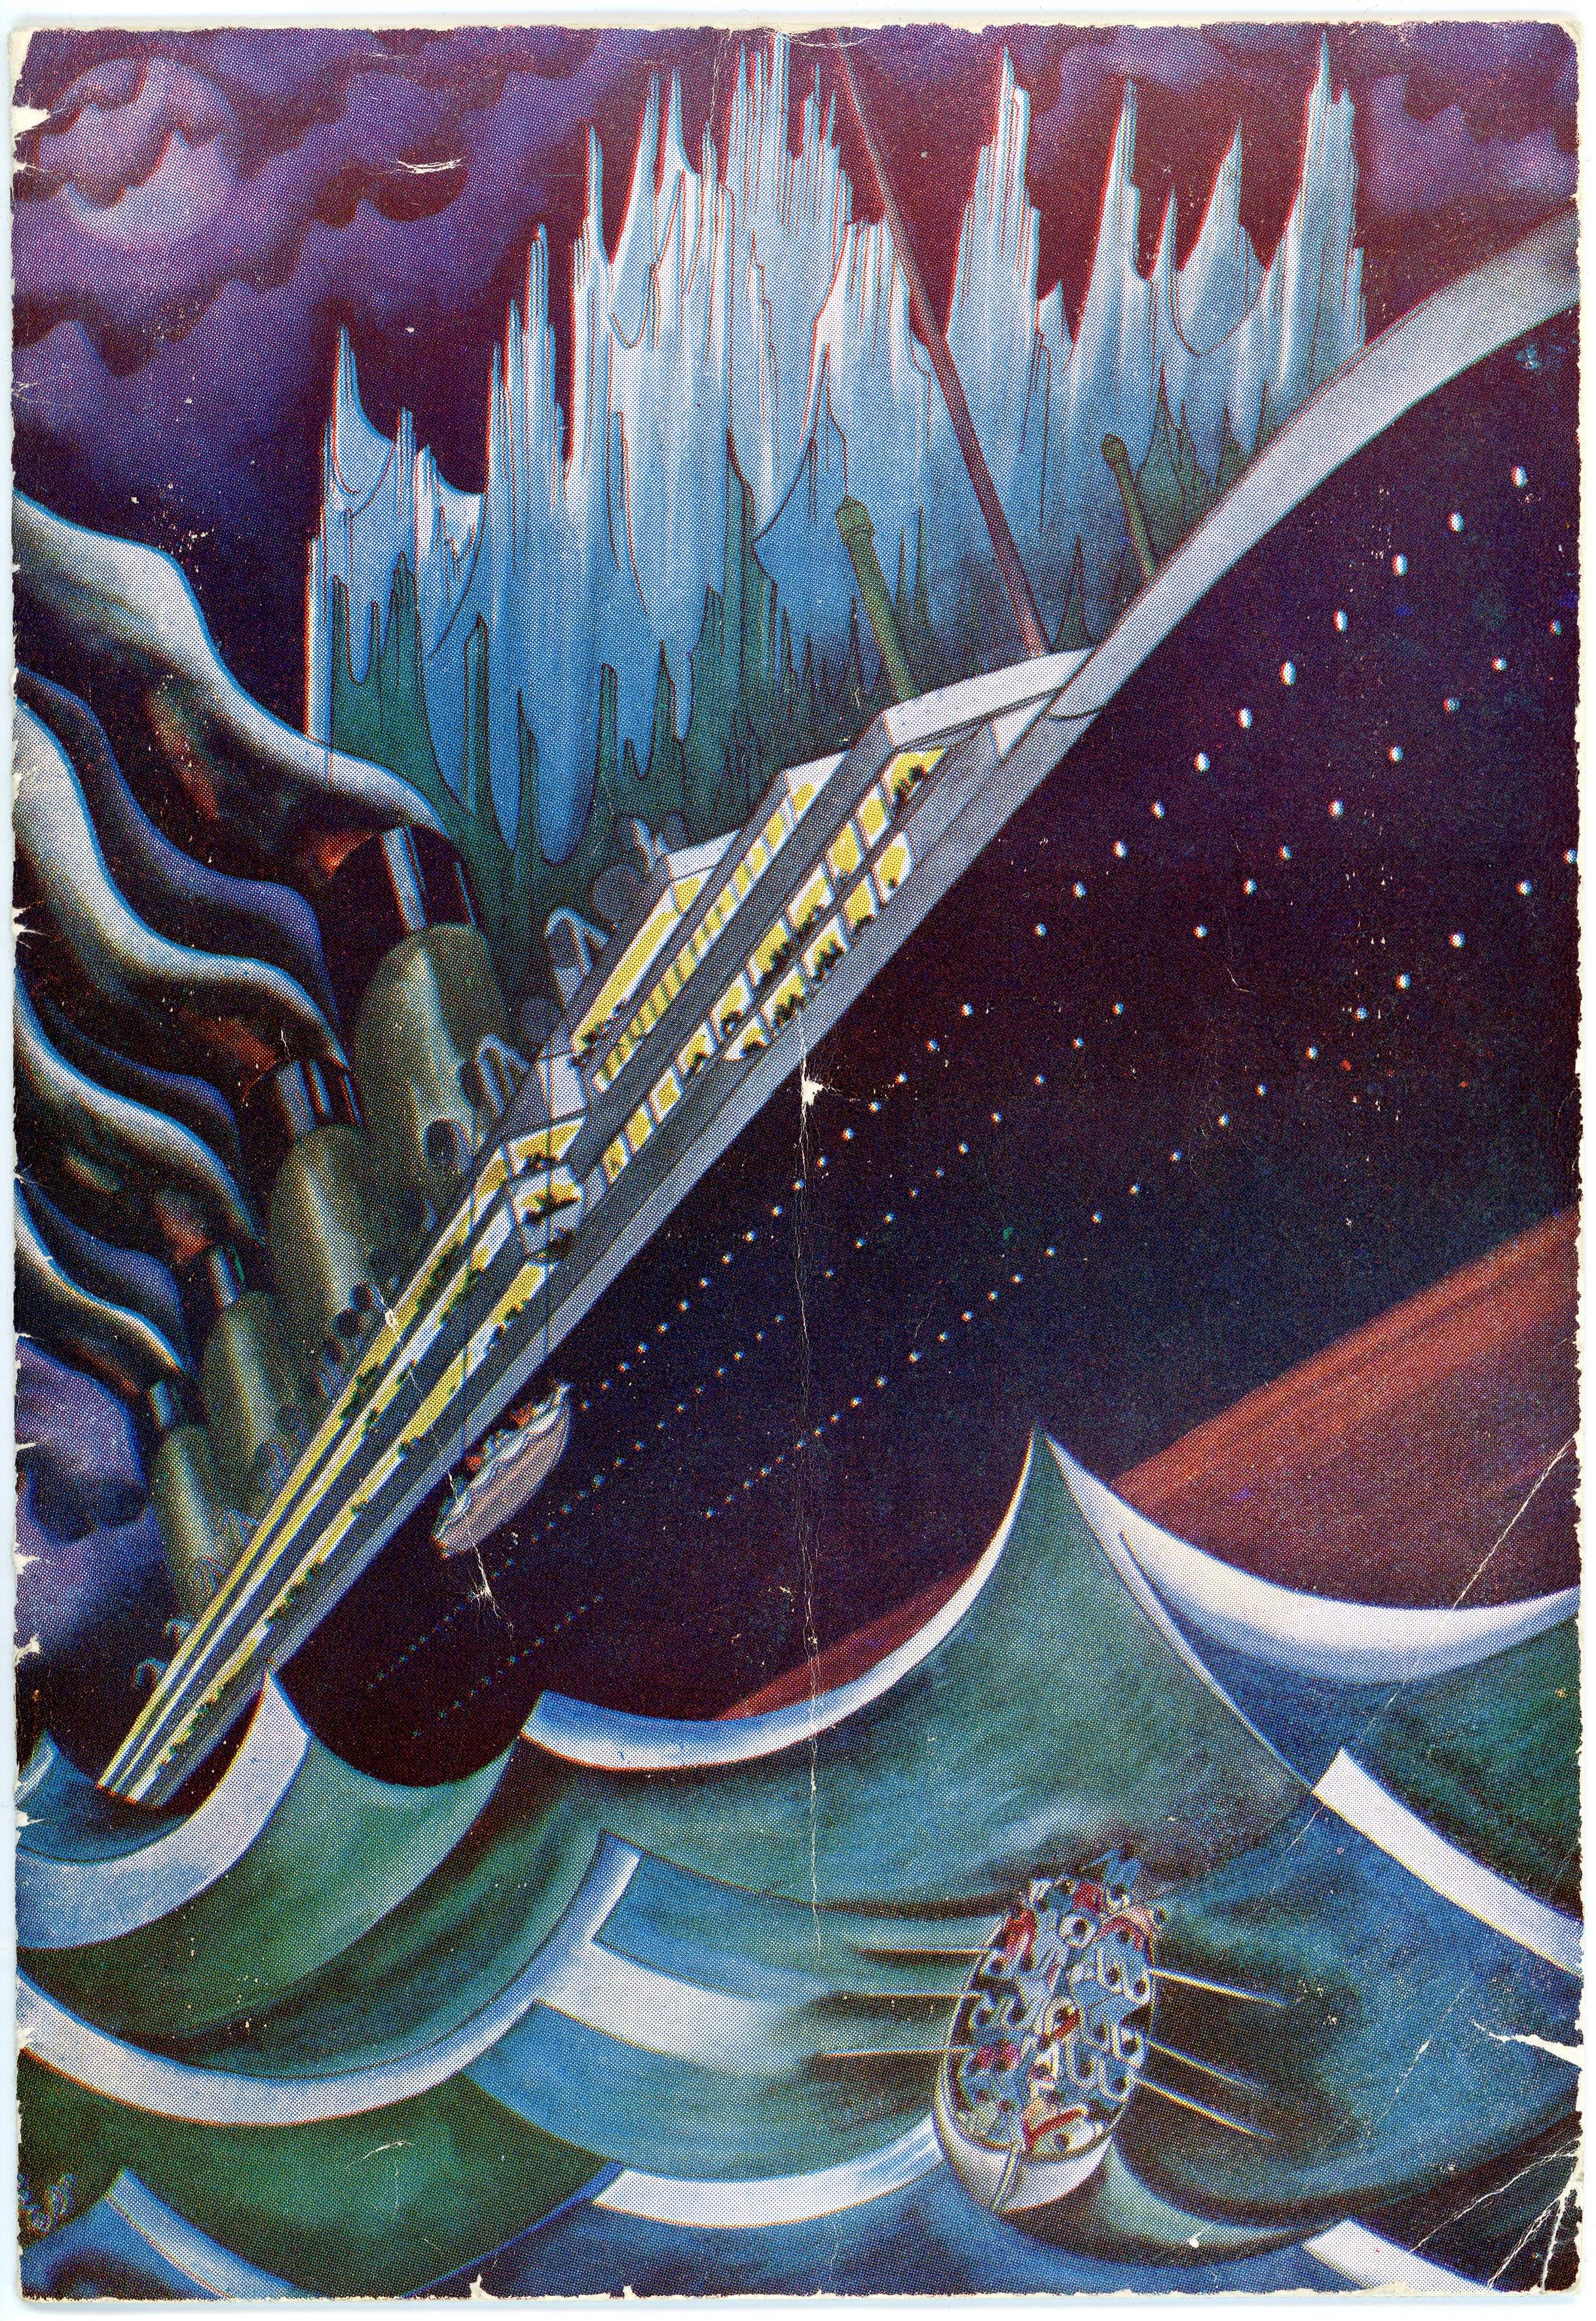 A stylised depiction of the Titanic sinking with a lifeboat escaping